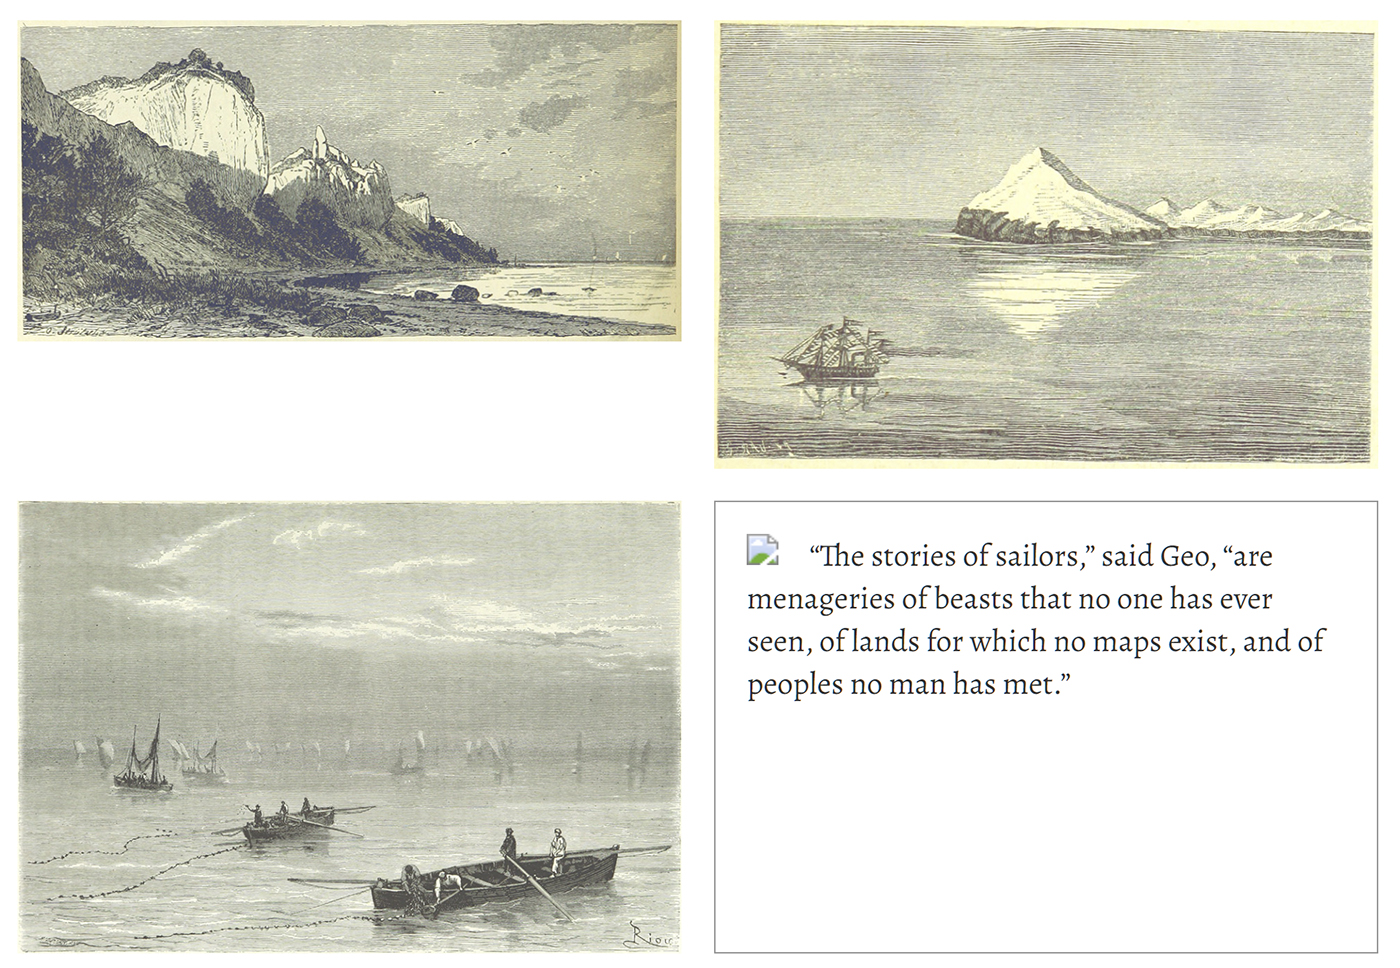 """Three engravings of the sea and one text fragment in grid layout. Text reads: """"The stories of sailors,"""" said Geo, """"are menageries of beasts that no one has ever seen, of lands for which no maps exist, and of peoples no man has met."""""""